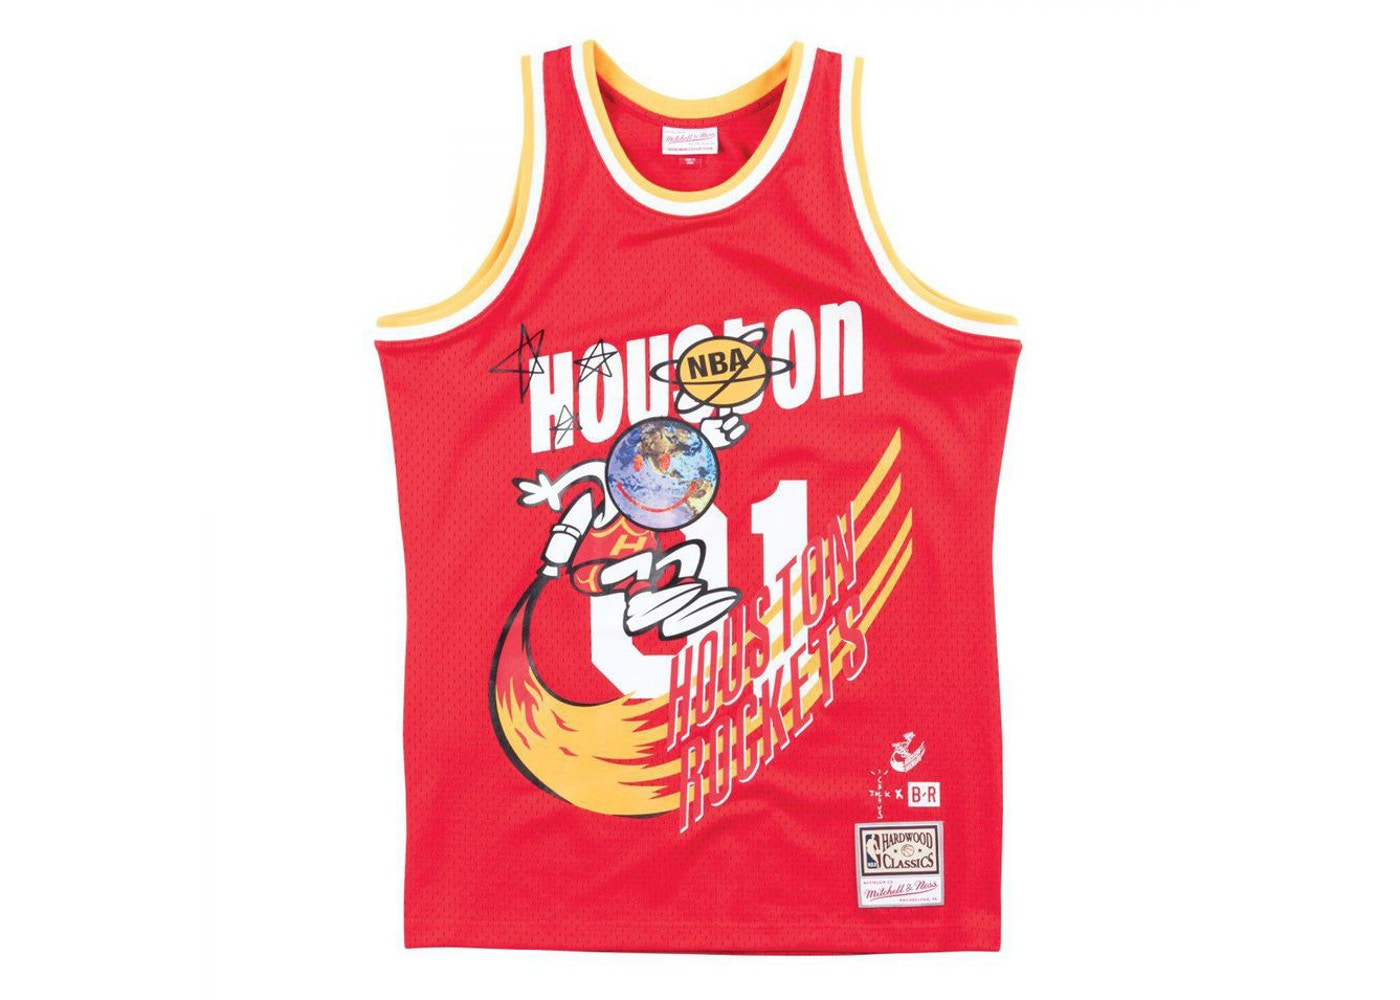 pretty nice 4113a 22050 Travis Scott x BR x Mitchell & Ness Rockets Jersey Red